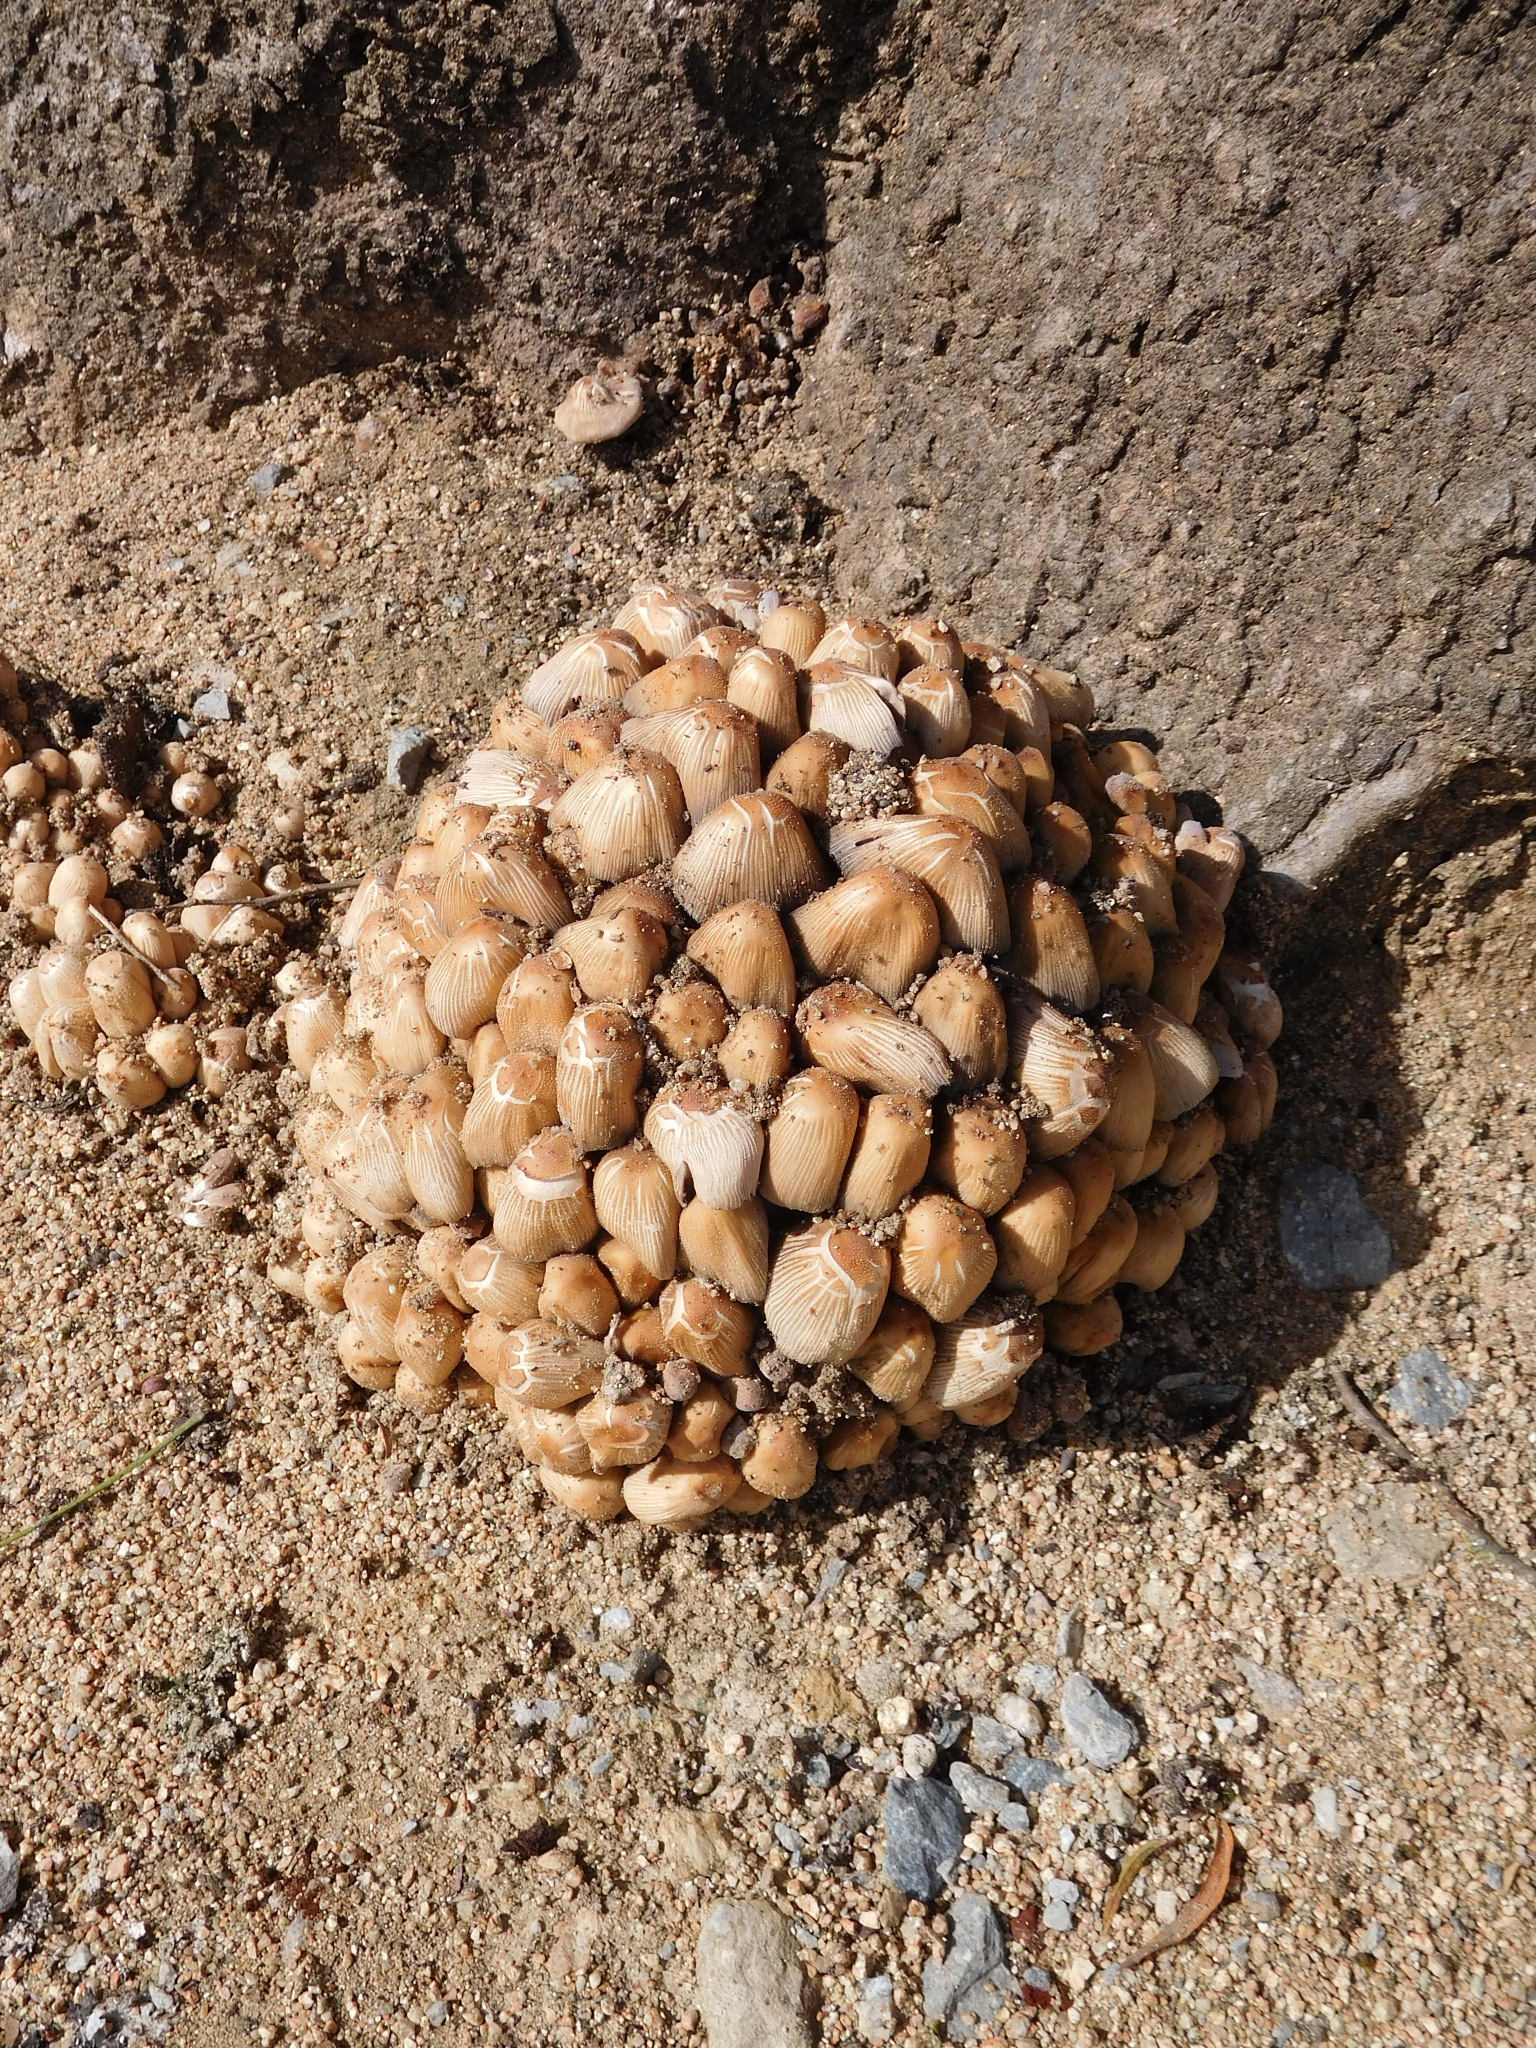 Ball of mushrooms by Luso